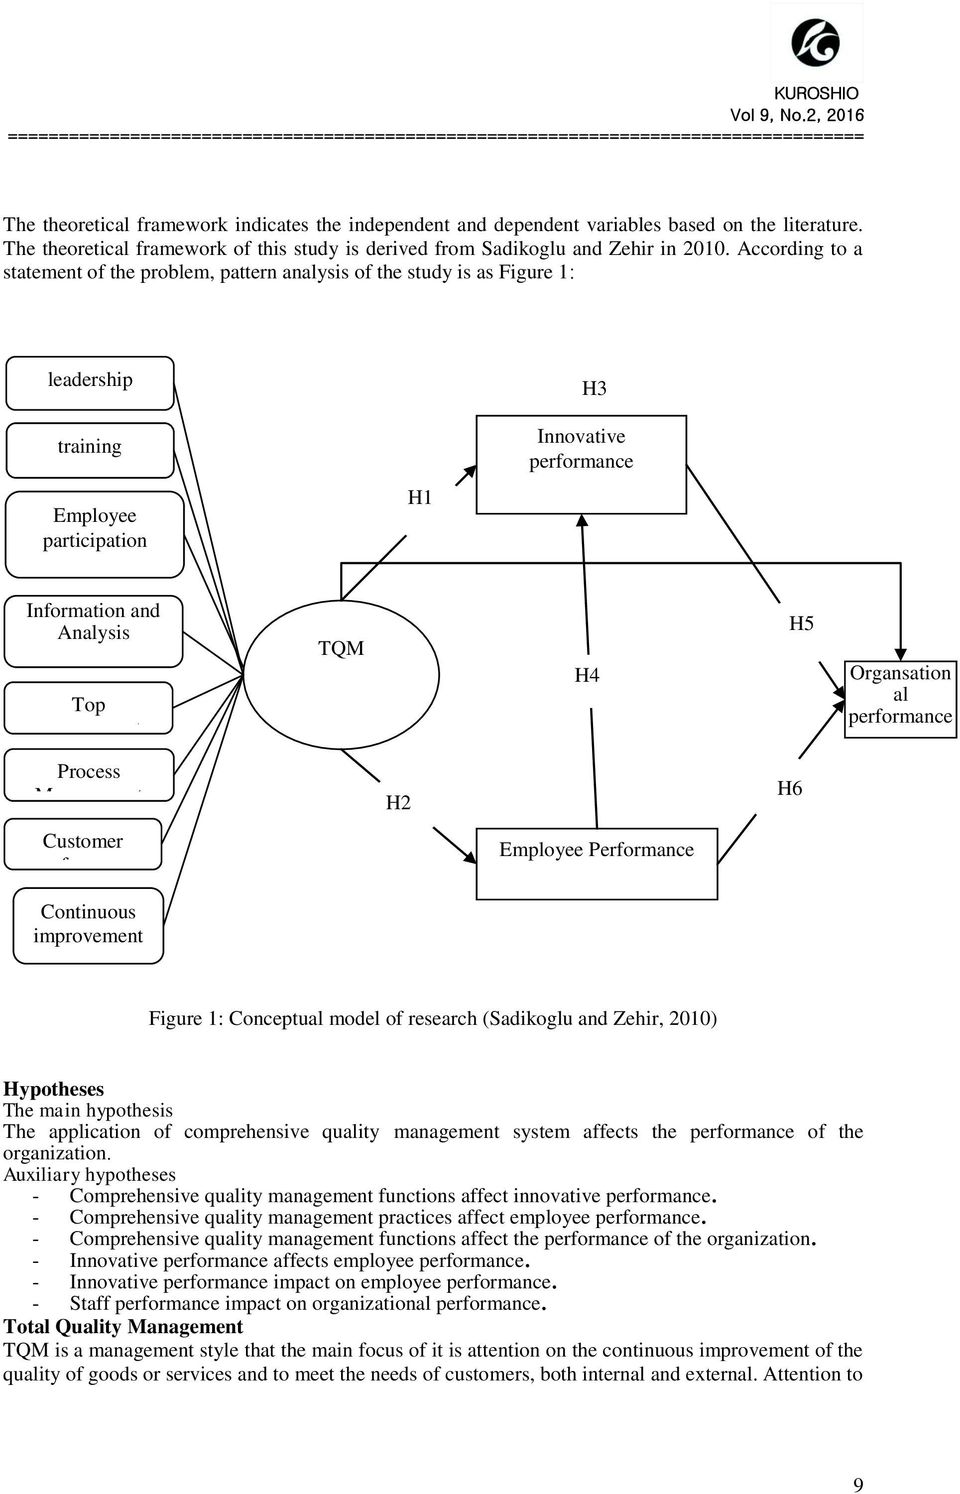 TQM H4 H5 Organsation al performance Process Management H2 H6 Customer focus Employee Performance Continuous improvement Figure 1: Conceptual model of research (Sadikoglu and Zehir, 2010) Hypotheses